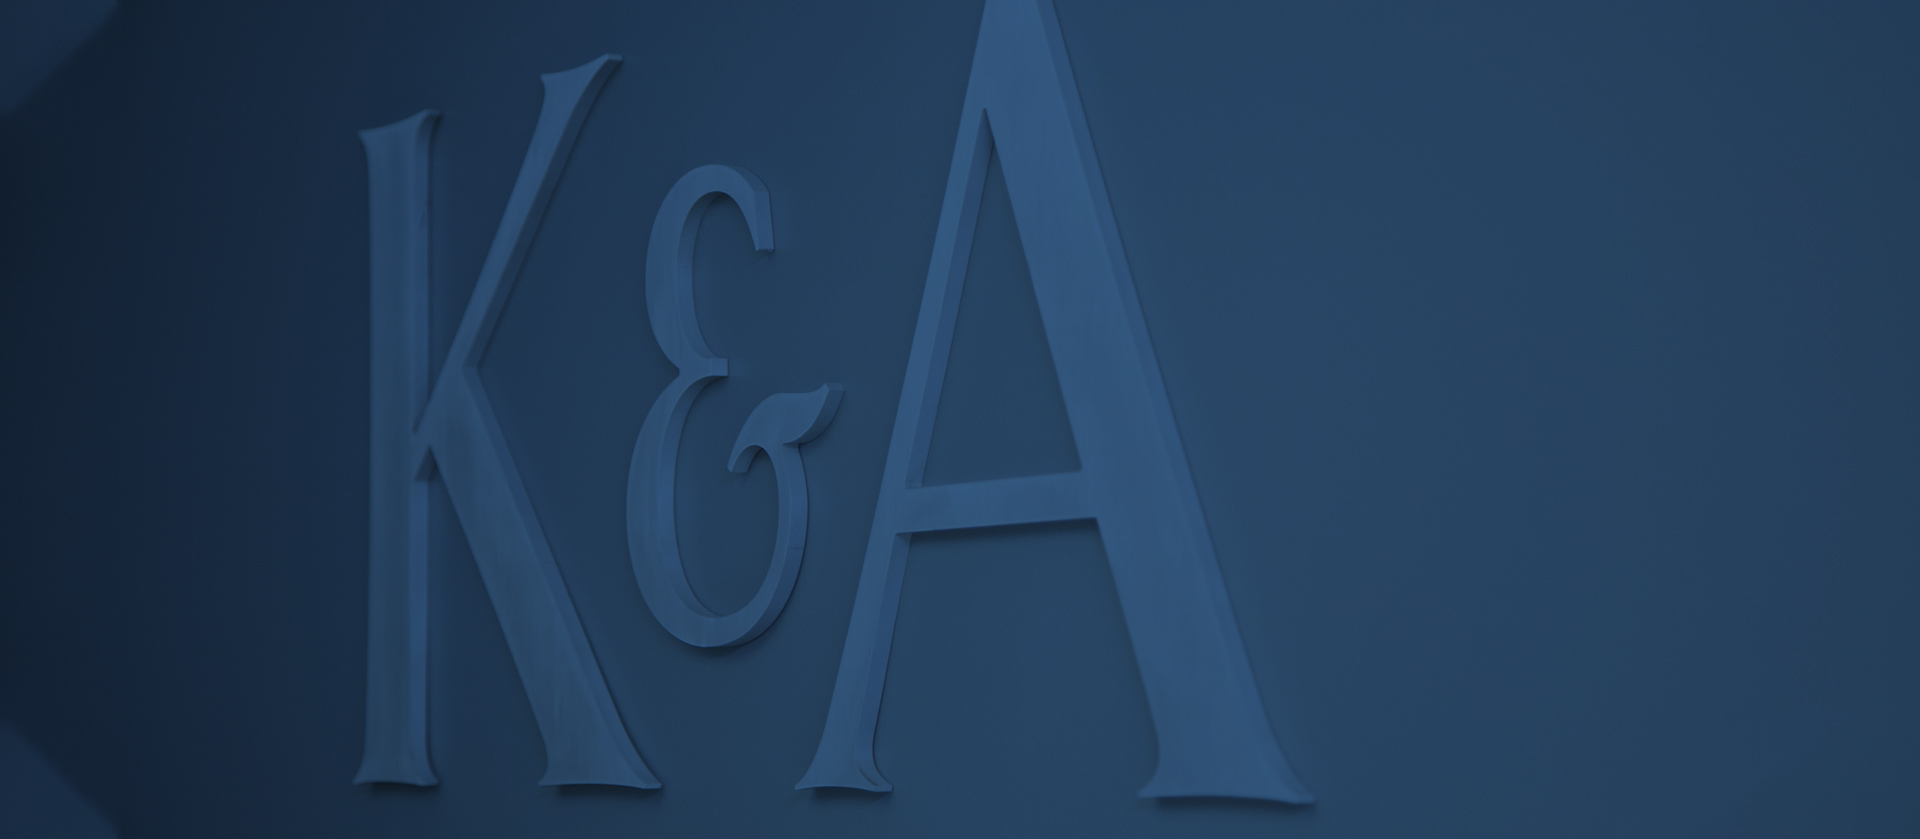 Why K&A?